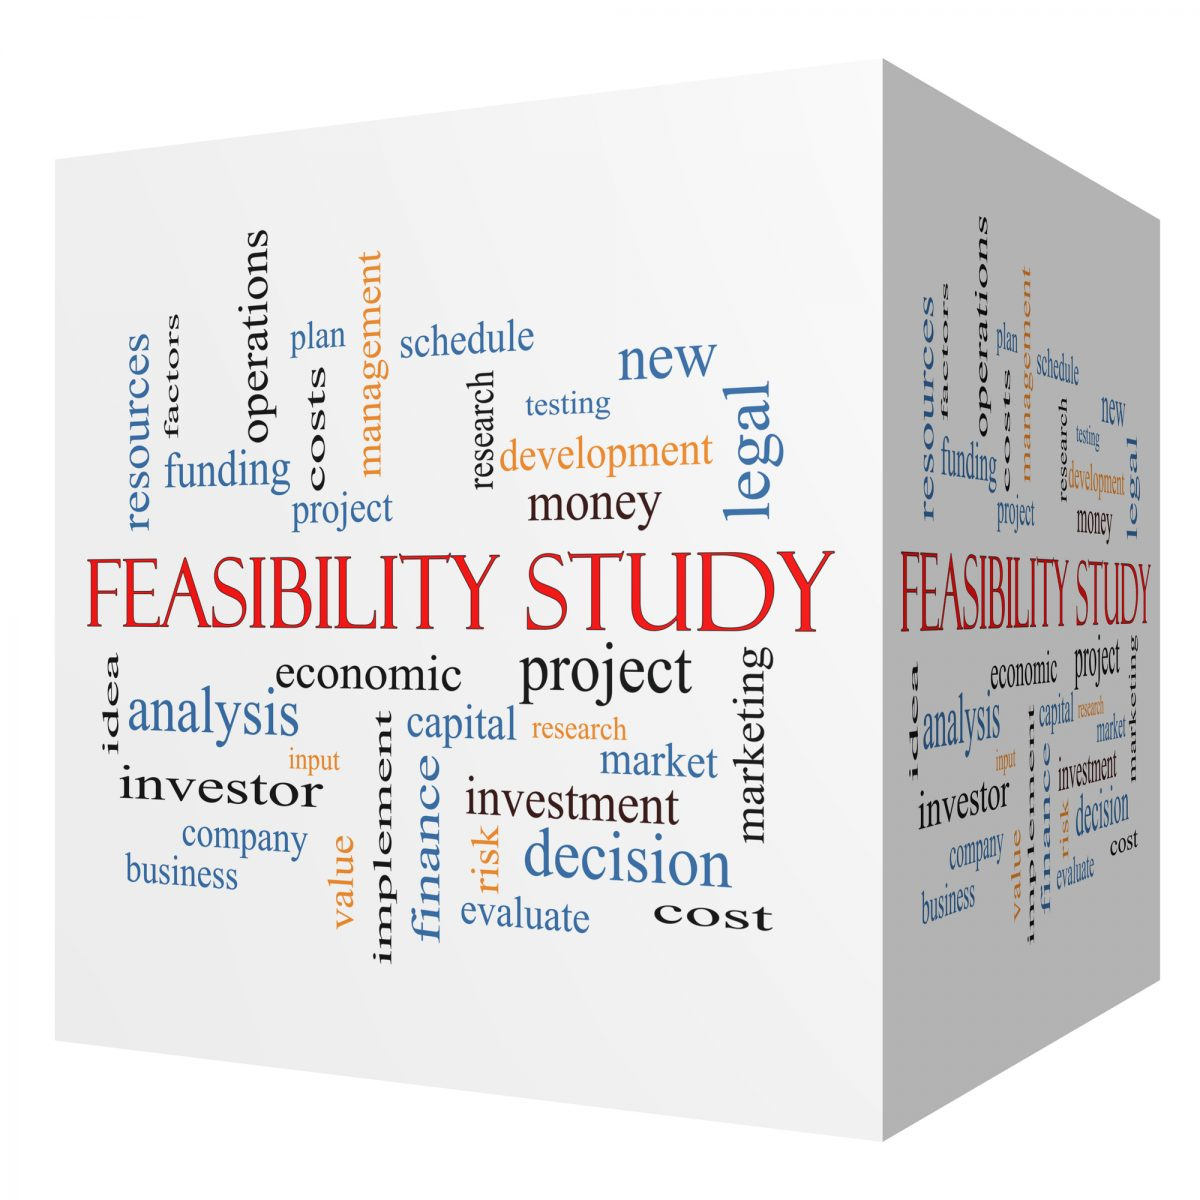 a feasibility study on the development